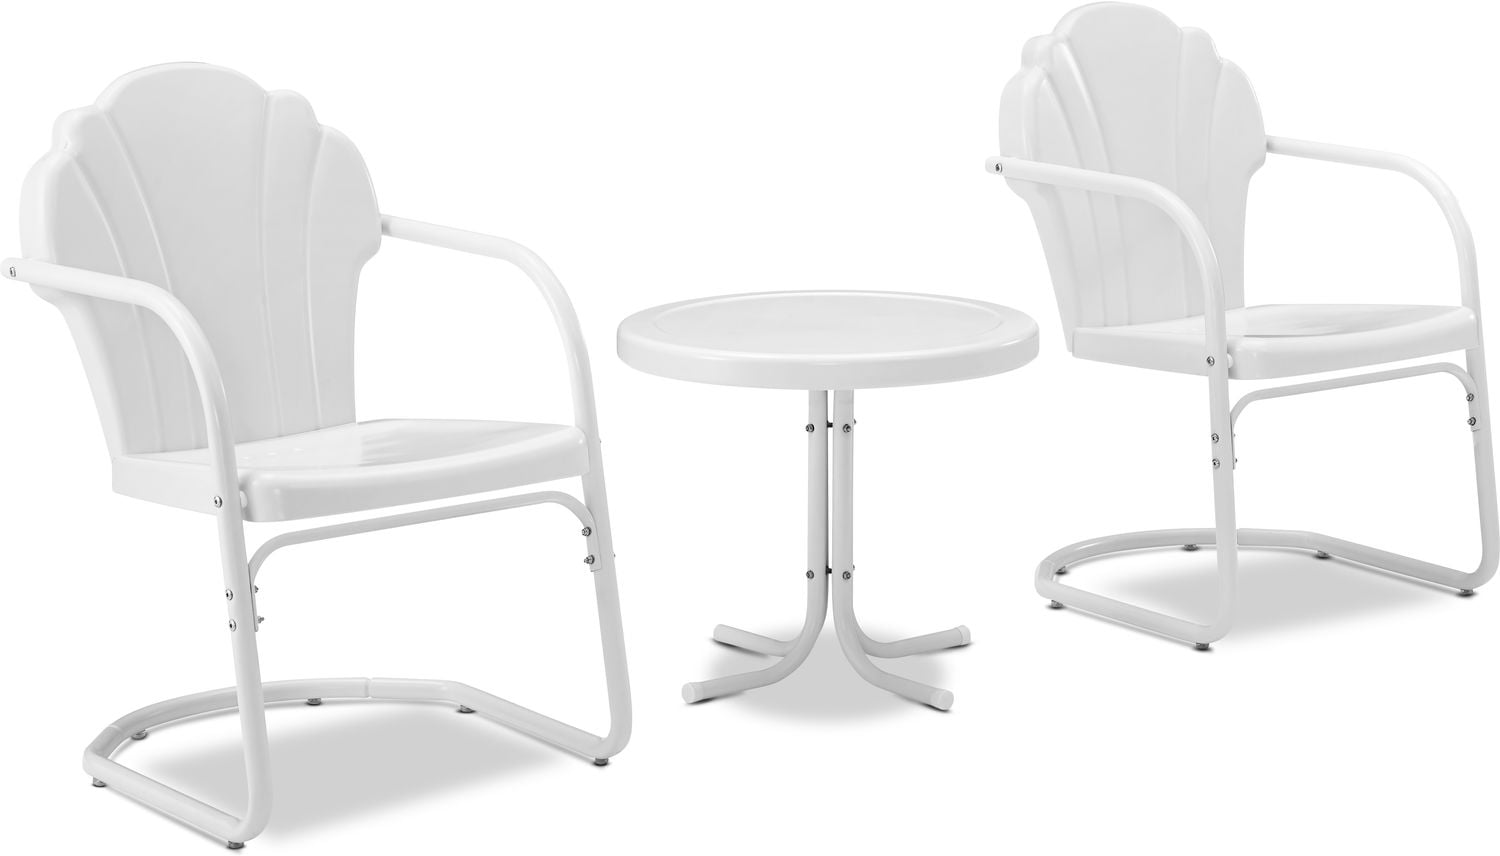 Outdoor Furniture - Tulip Set of 2 Outdoor Chairs and Side Table